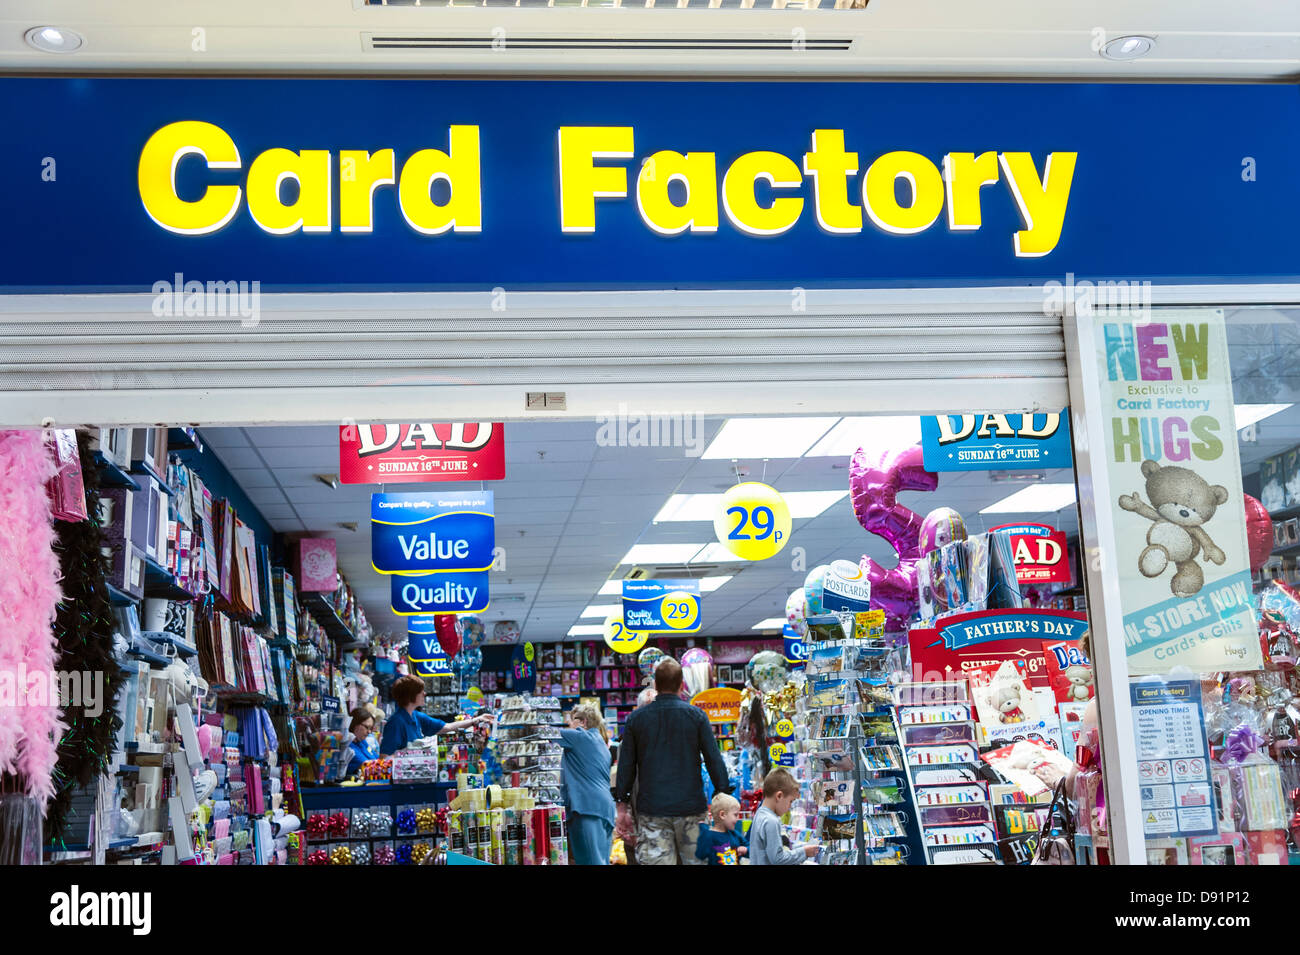 Card Factory store at Weston super Mare, UK. - Stock Image